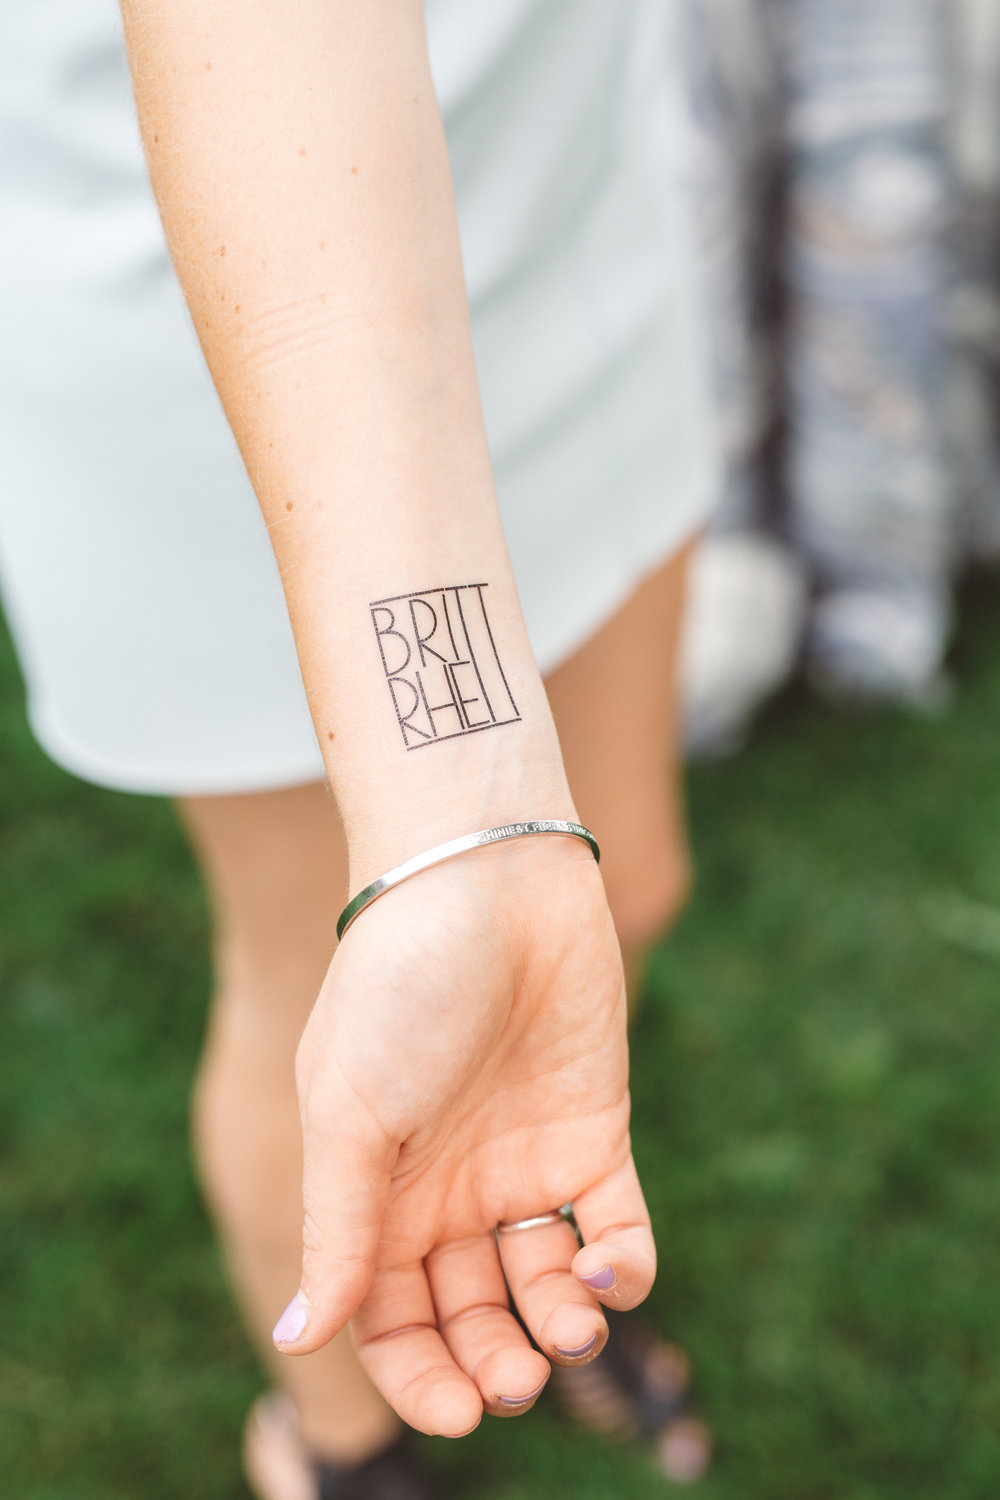 Branded - From stir sticks and tattoos to an oversized photo op spot, this wedding had B + R's touch everywhere thanks to the killer talents of our ladies at Prim & Pixie!